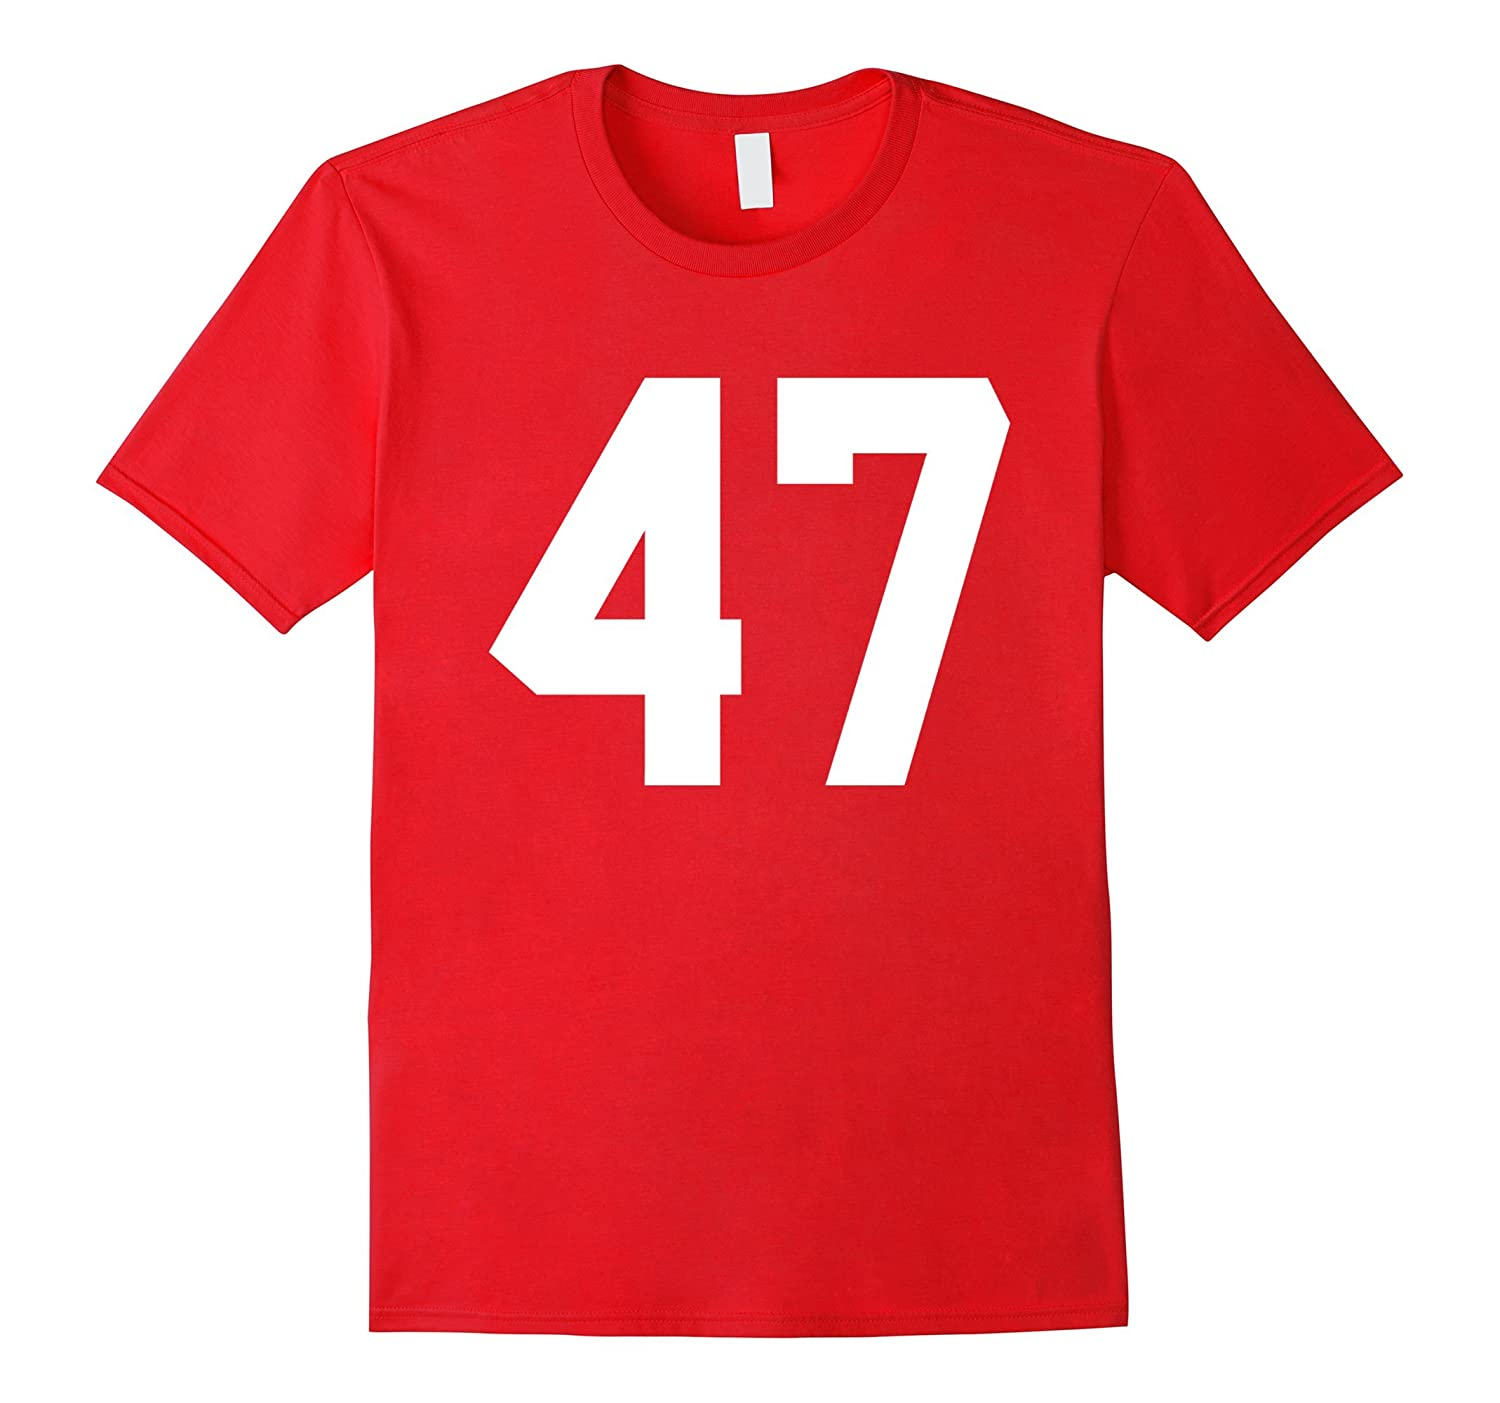 #47 Team Sports Jersey Number Front & Back Player / Fan Tee-CL